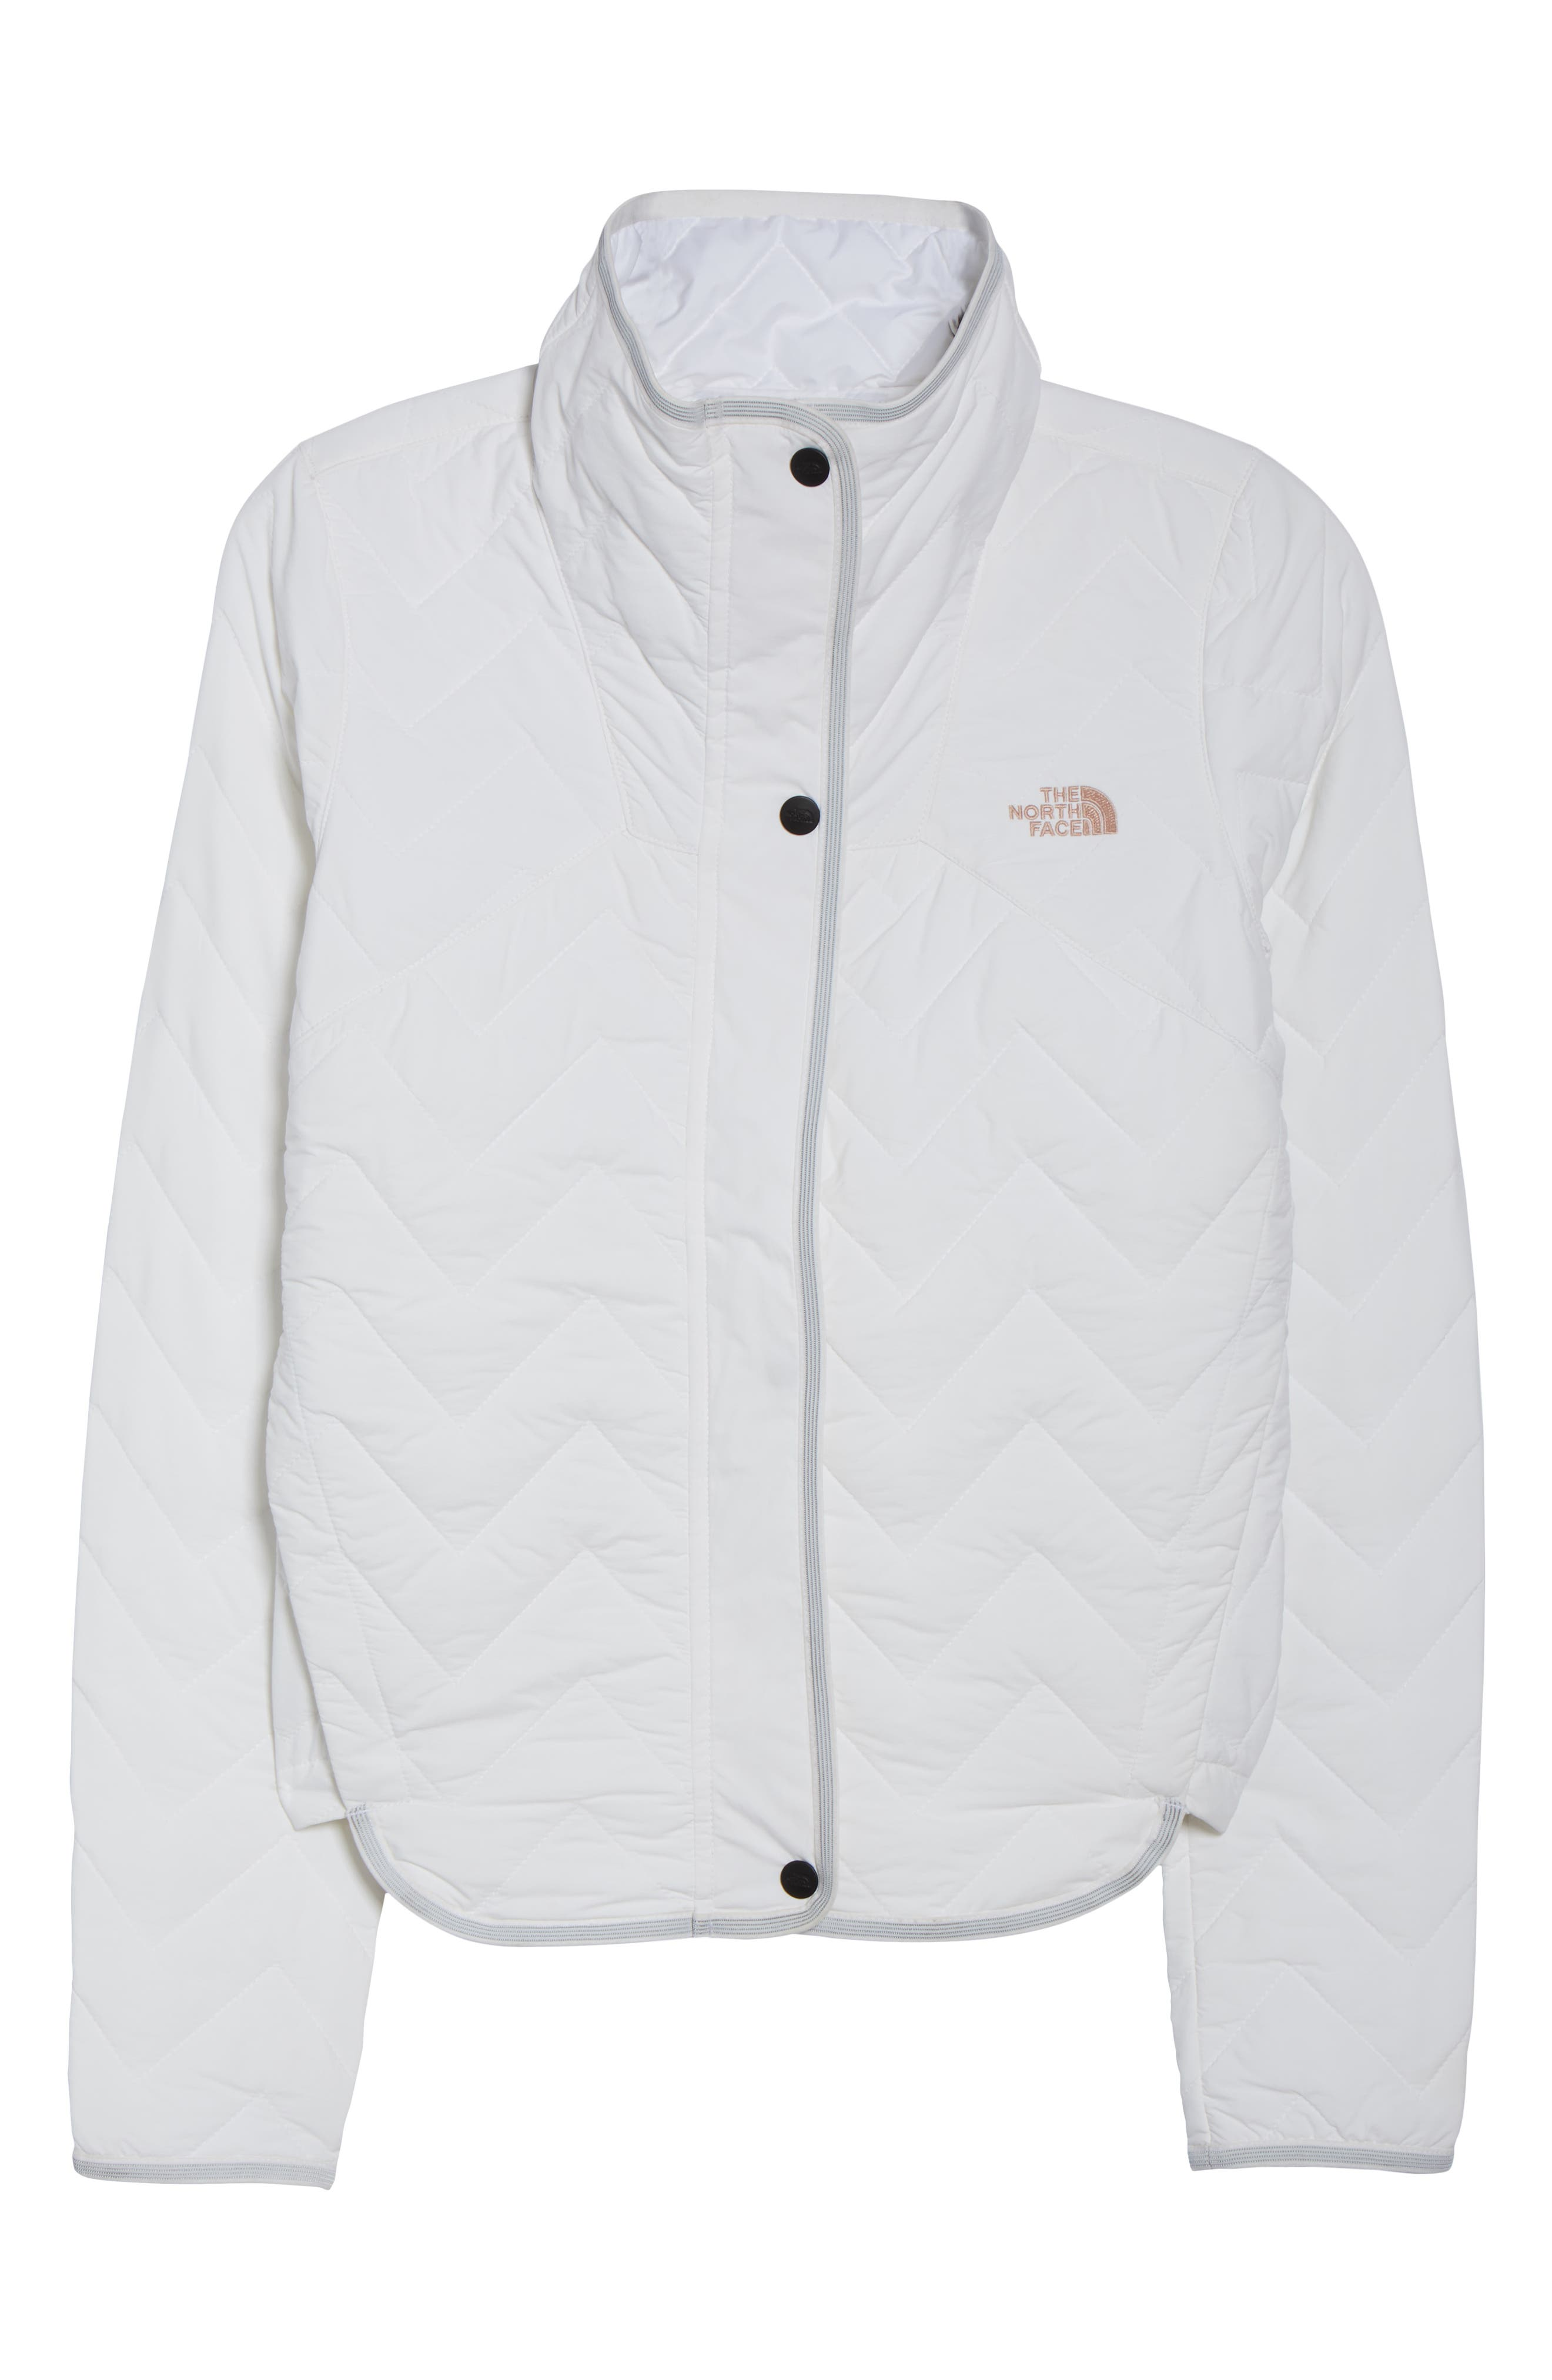 Westborough Insulated Jacket,                             Alternate thumbnail 6, color,                             BRIGHT WHITE